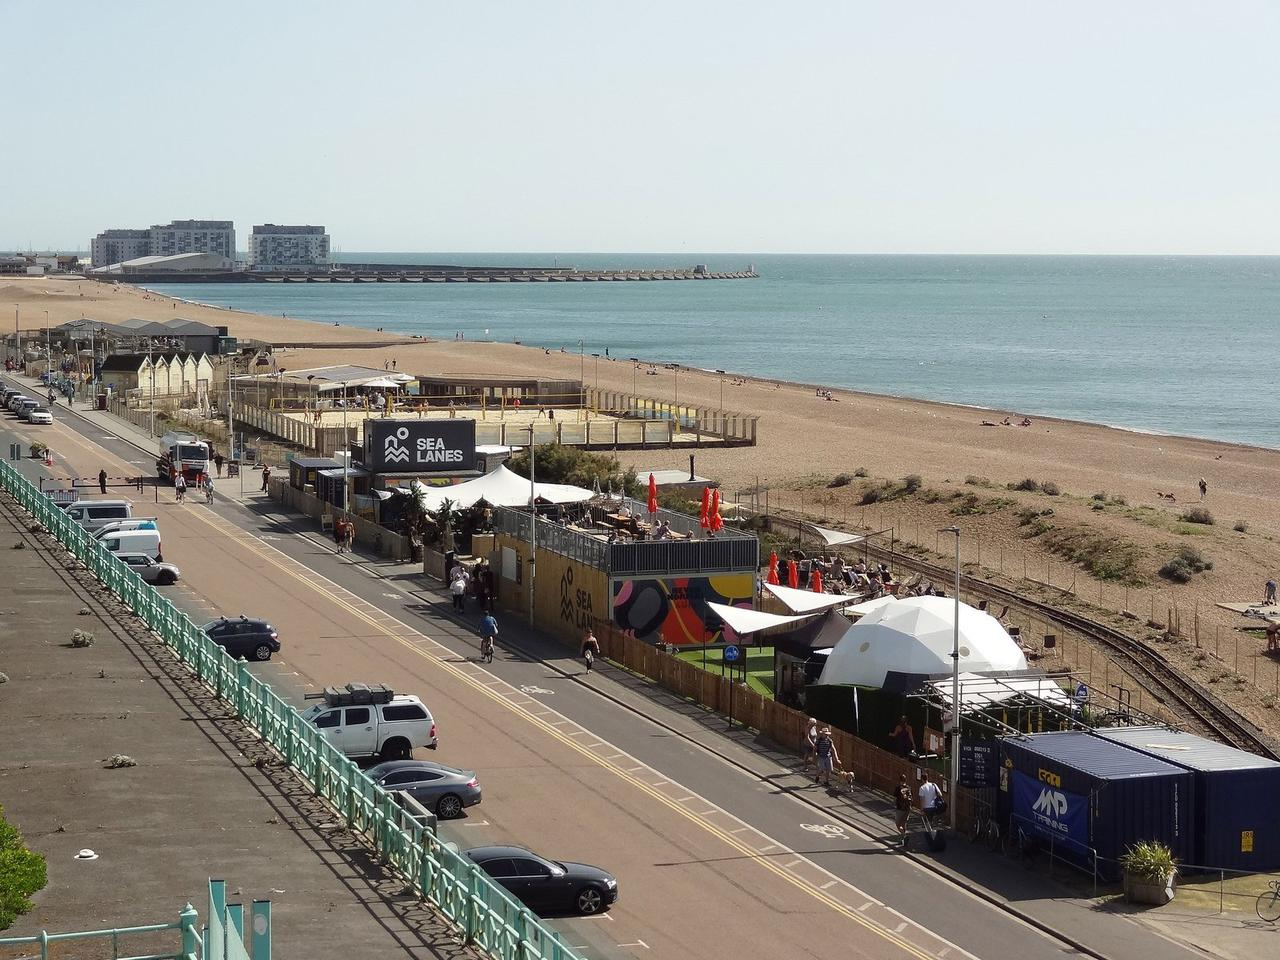 Sea Views Apartment, Brighton & Hove Images - 7